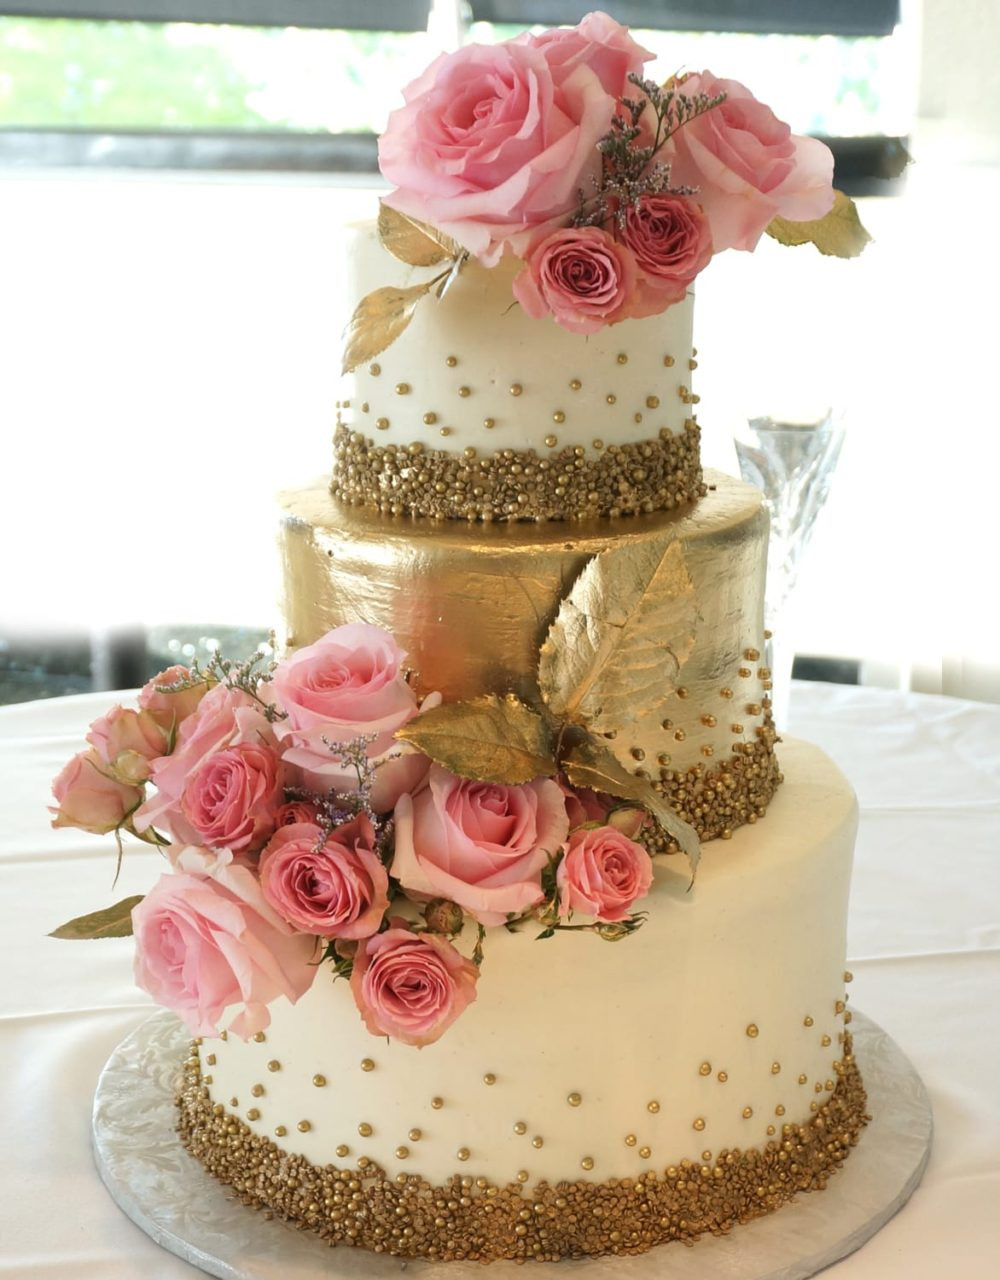 Wedding Cupcakes Pictures  Wedding Cakes Gallery – Dreamcakes Bakery